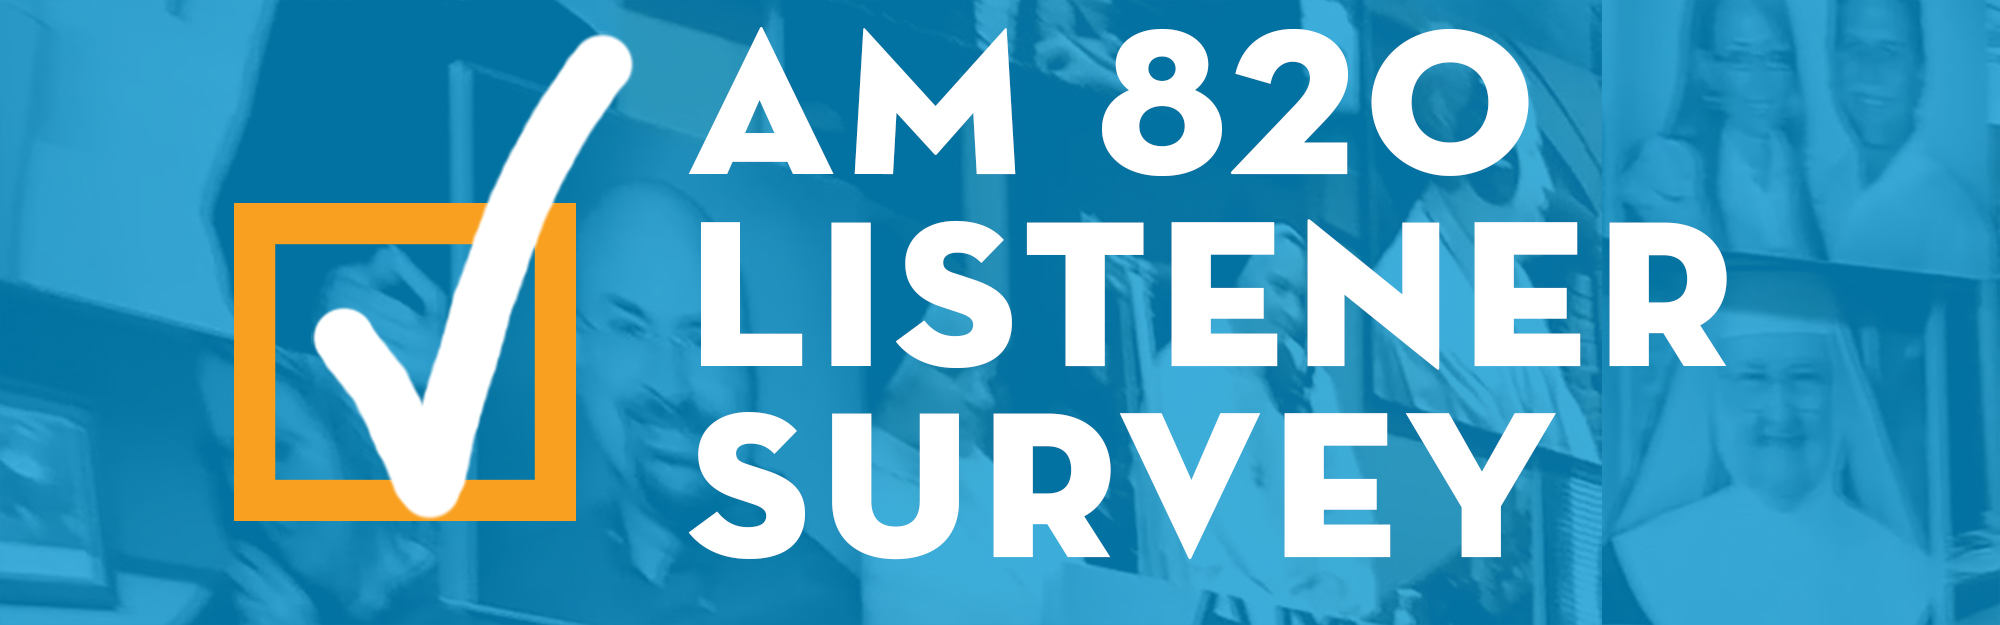 Tell us about your AM 820 radio experience